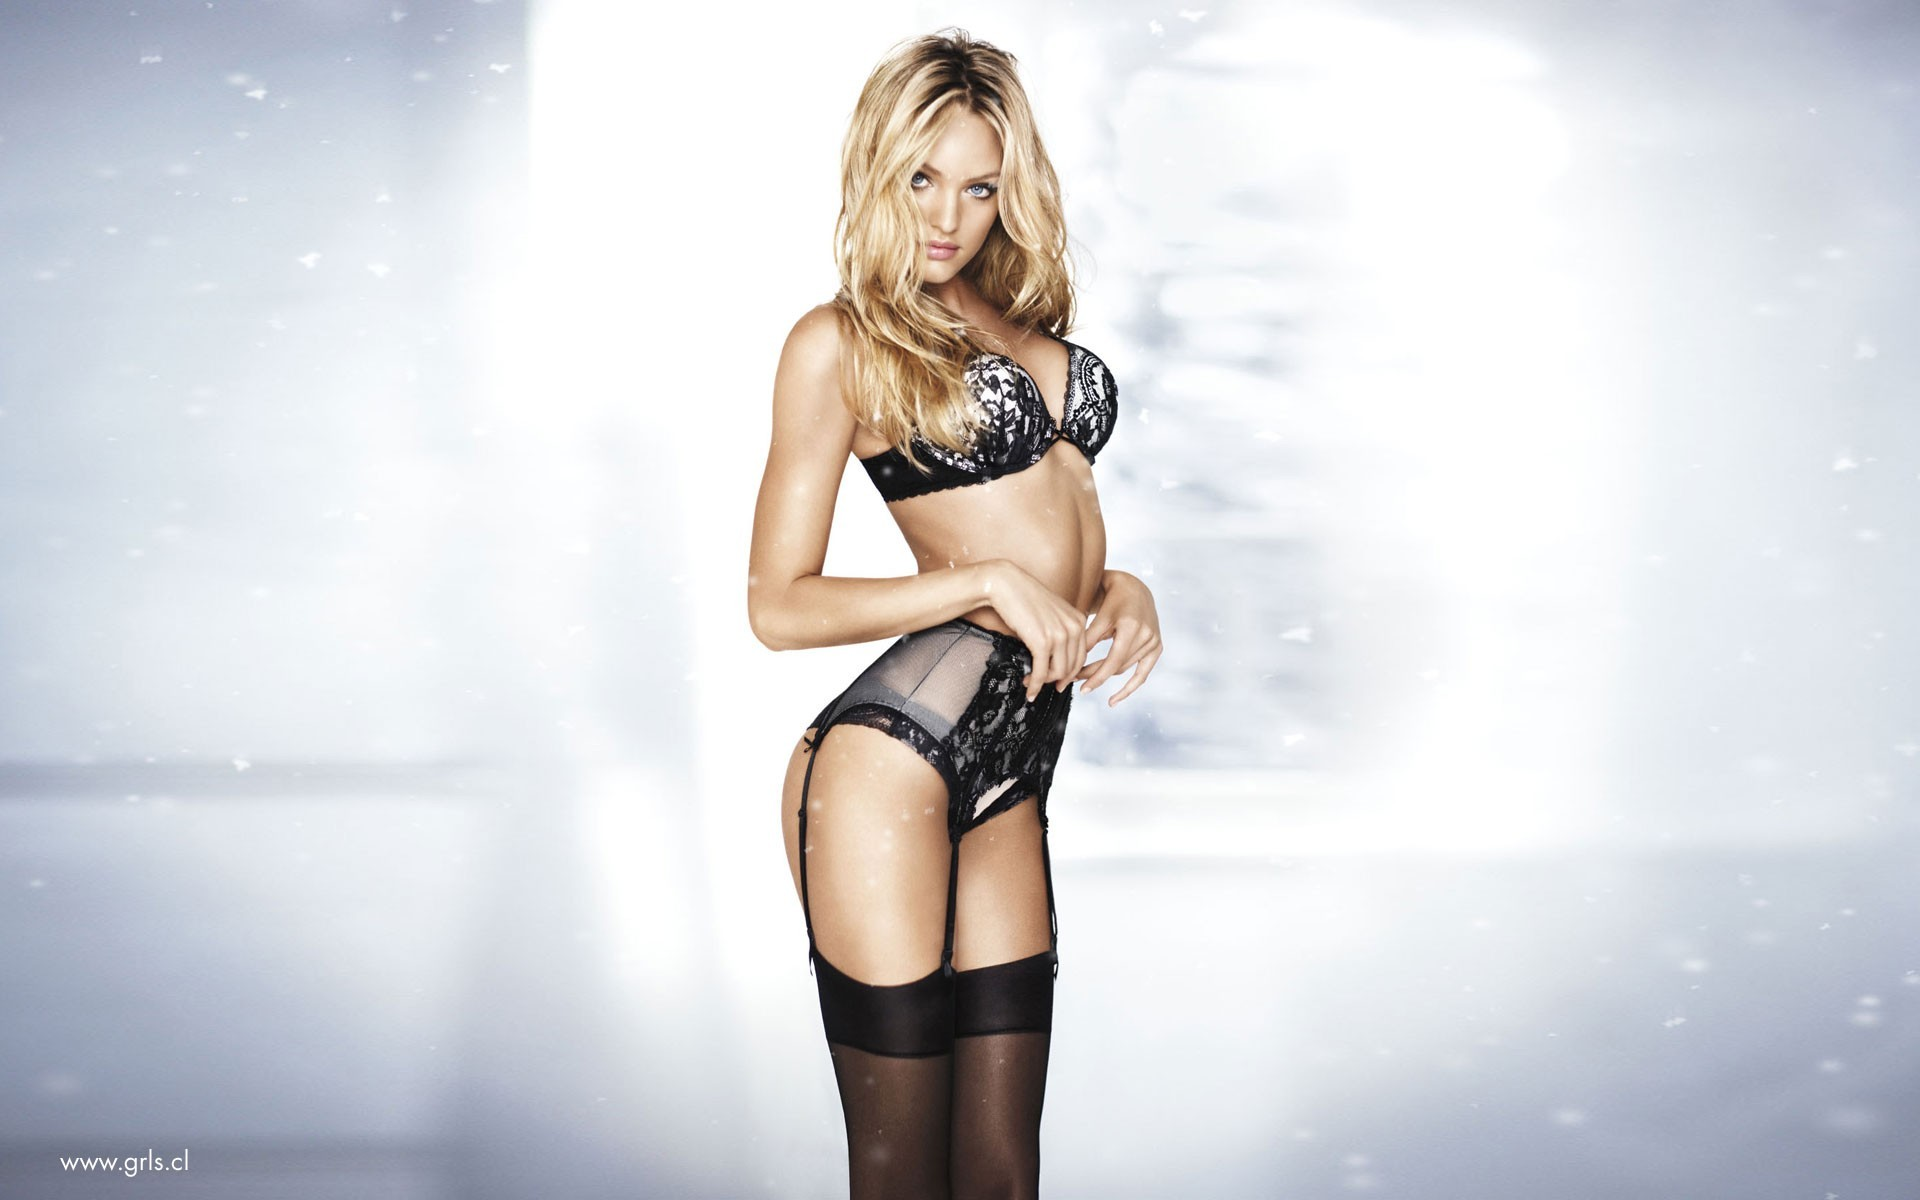 lingerie blondes woman stockings HD Wallpaper